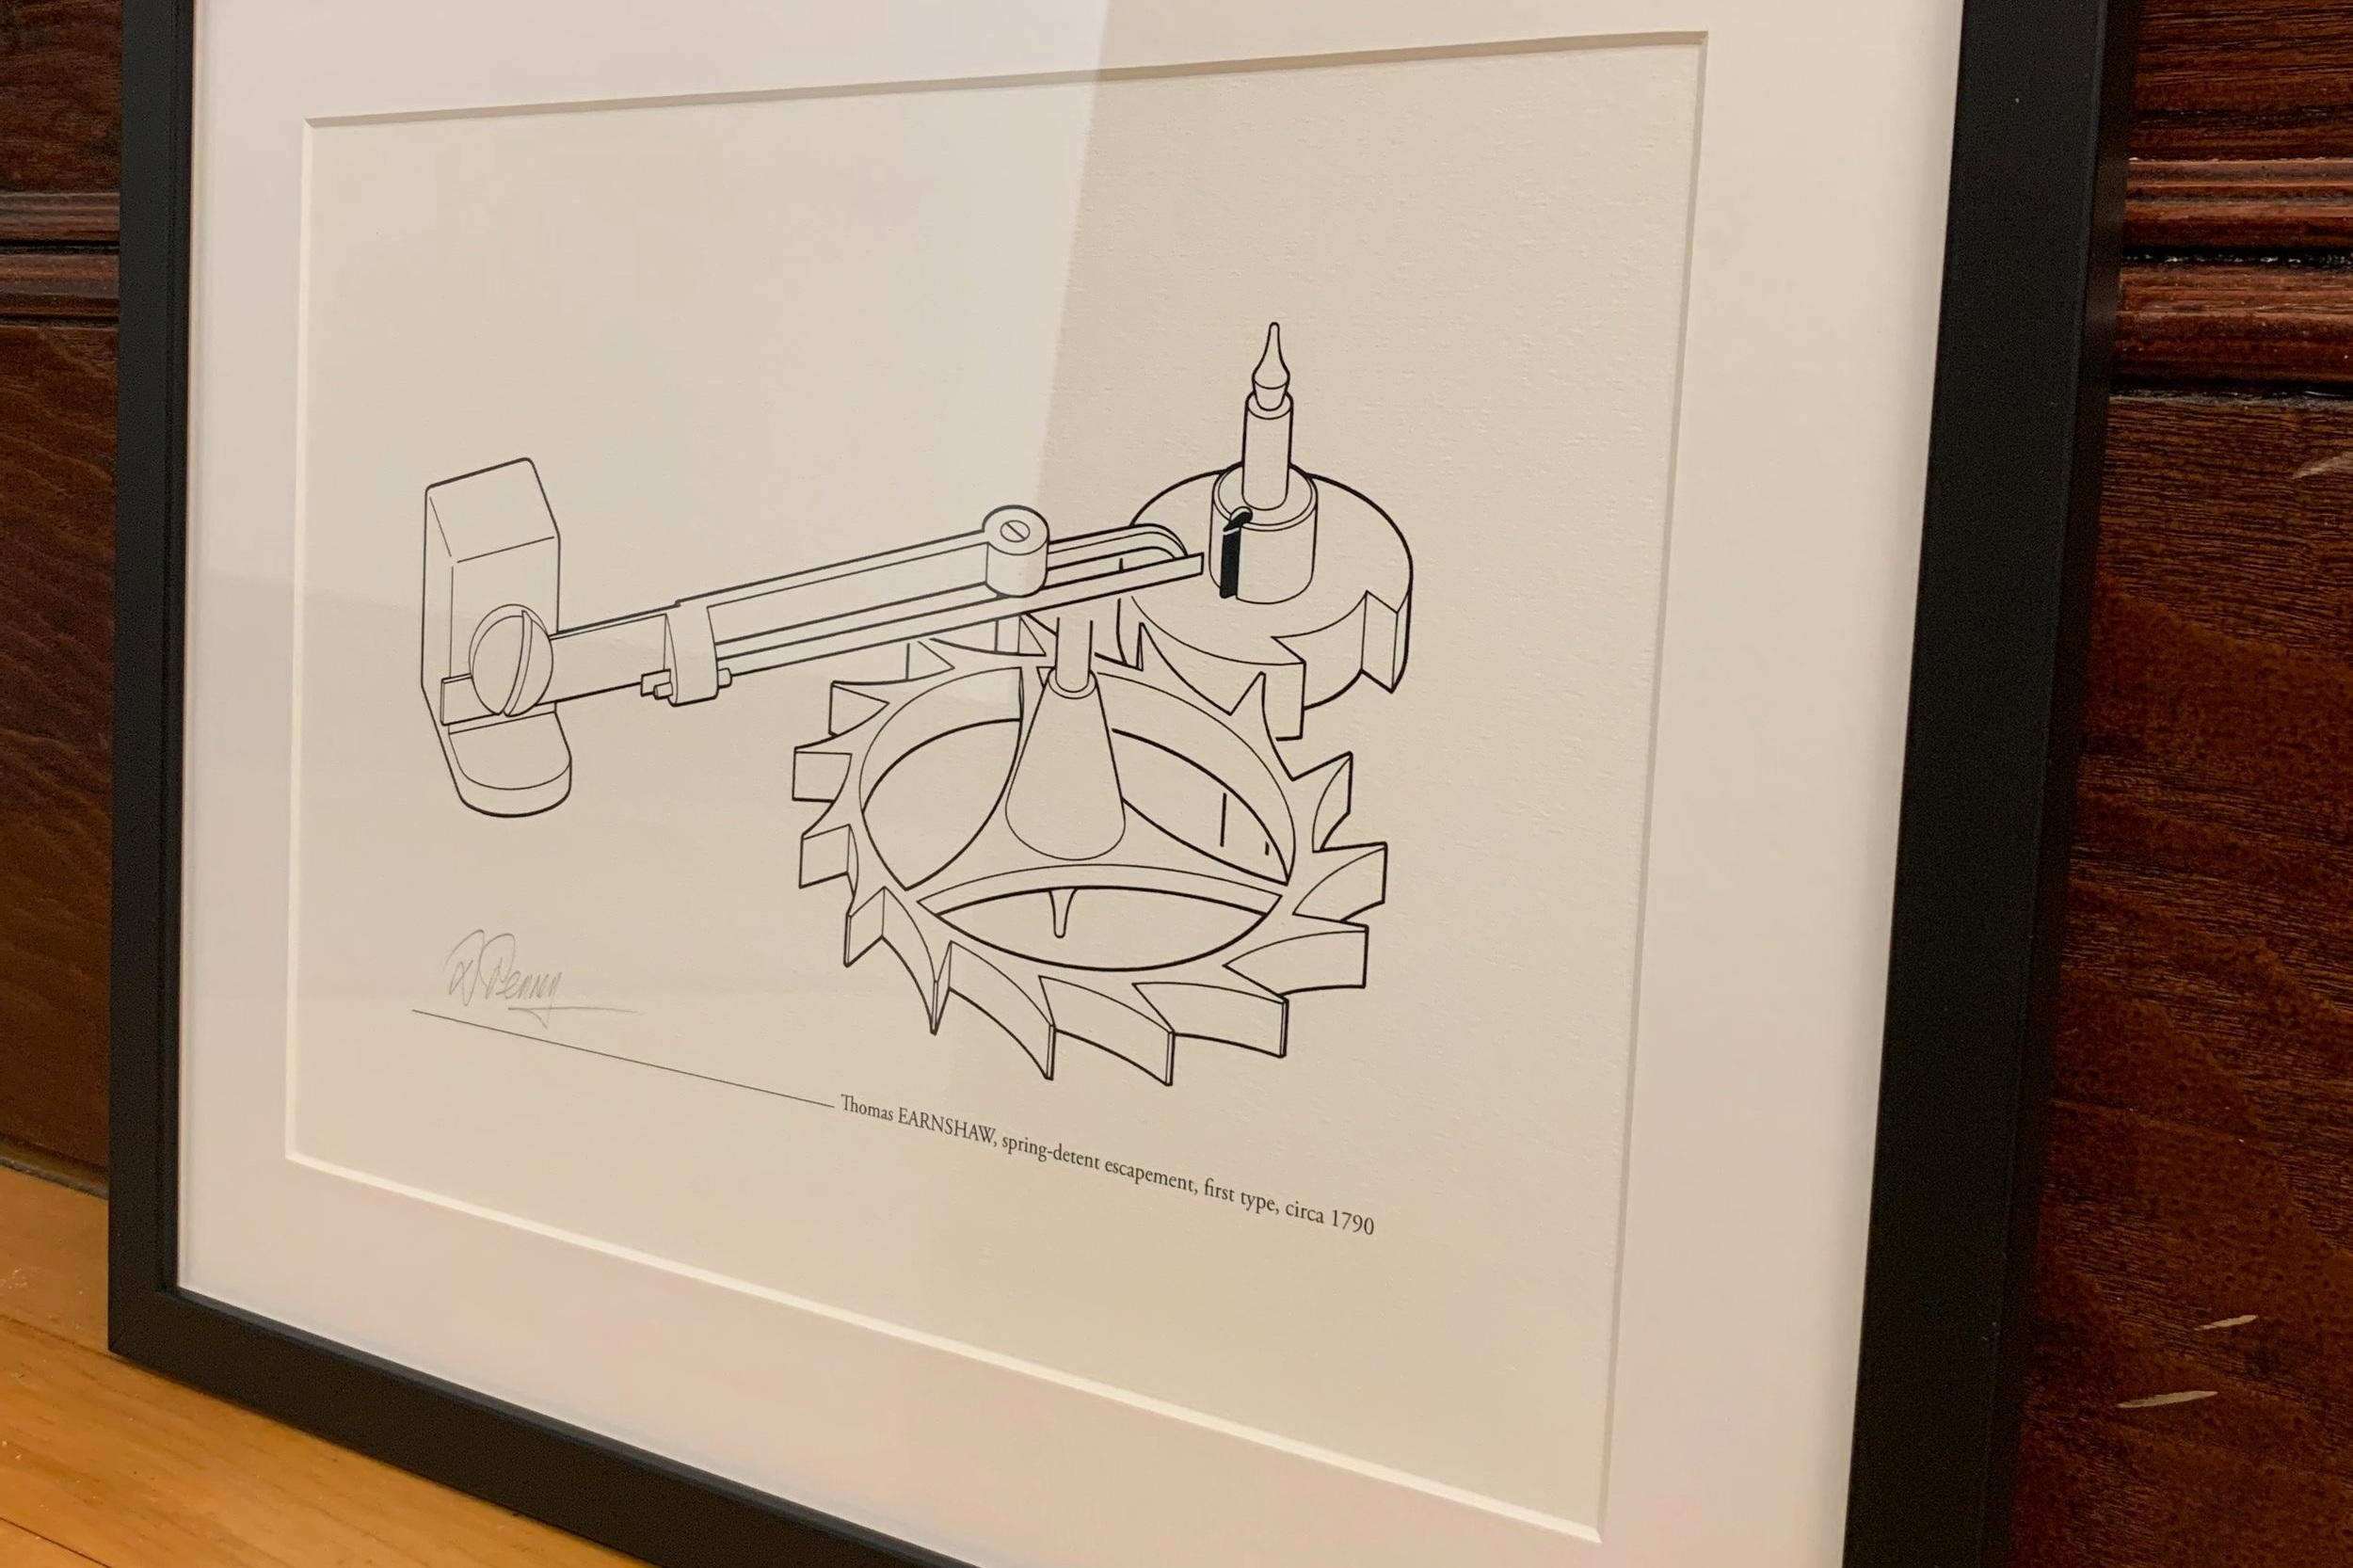 Lot 2 - Framed Escapement Print by    David Penney   Earnshaw spring-detent escapement, first type, circa 1790. By the world-famous horological illustrator, David Penney.  Estimate: $200 - $500